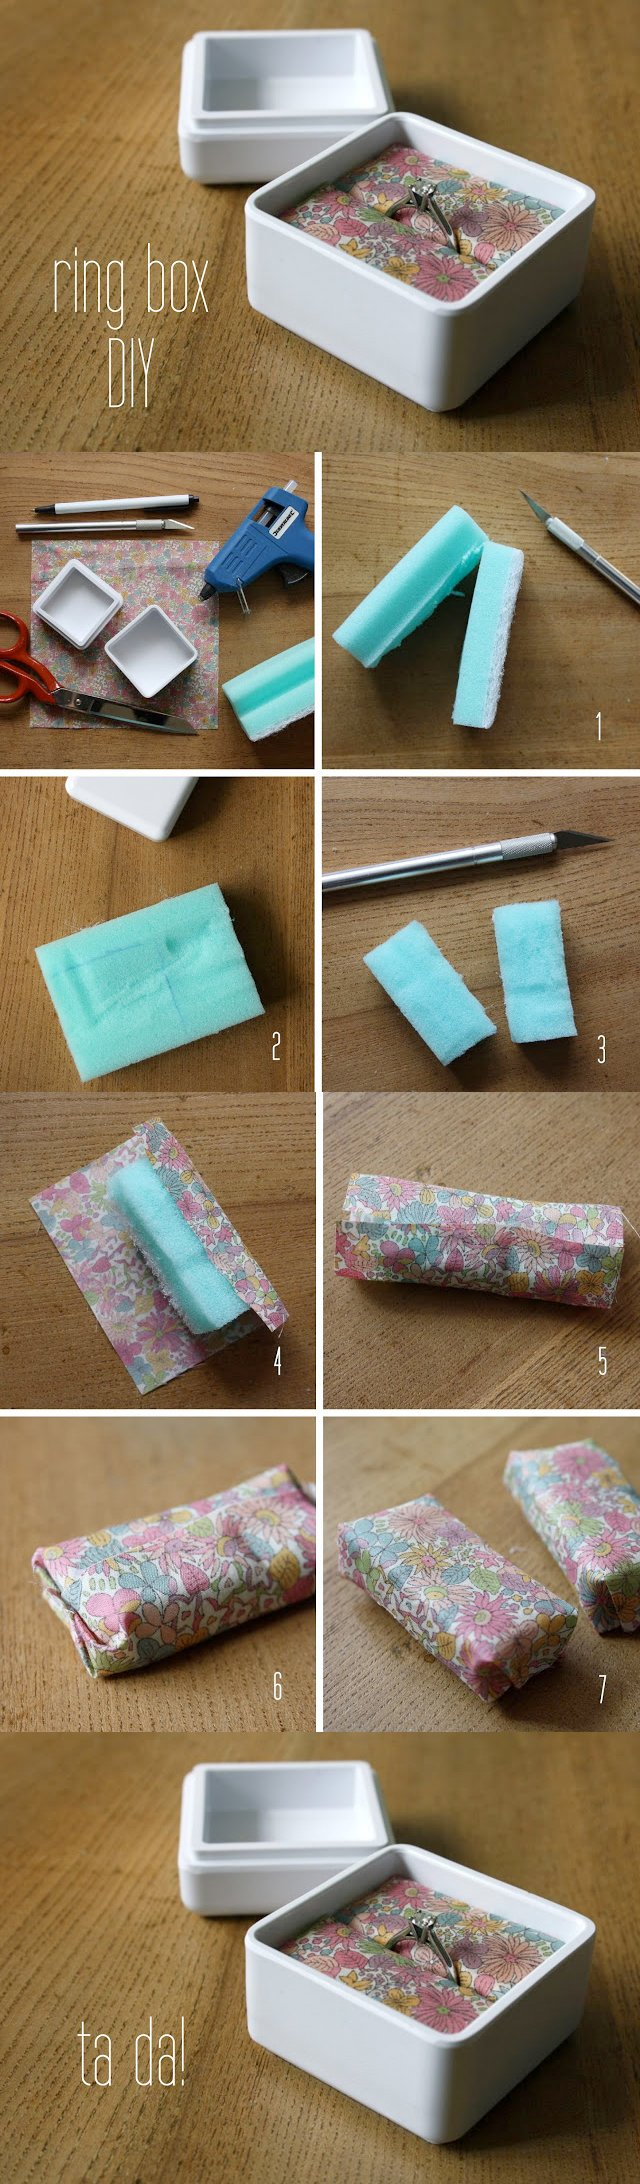 diy projects how to make ring organizers pretty designs